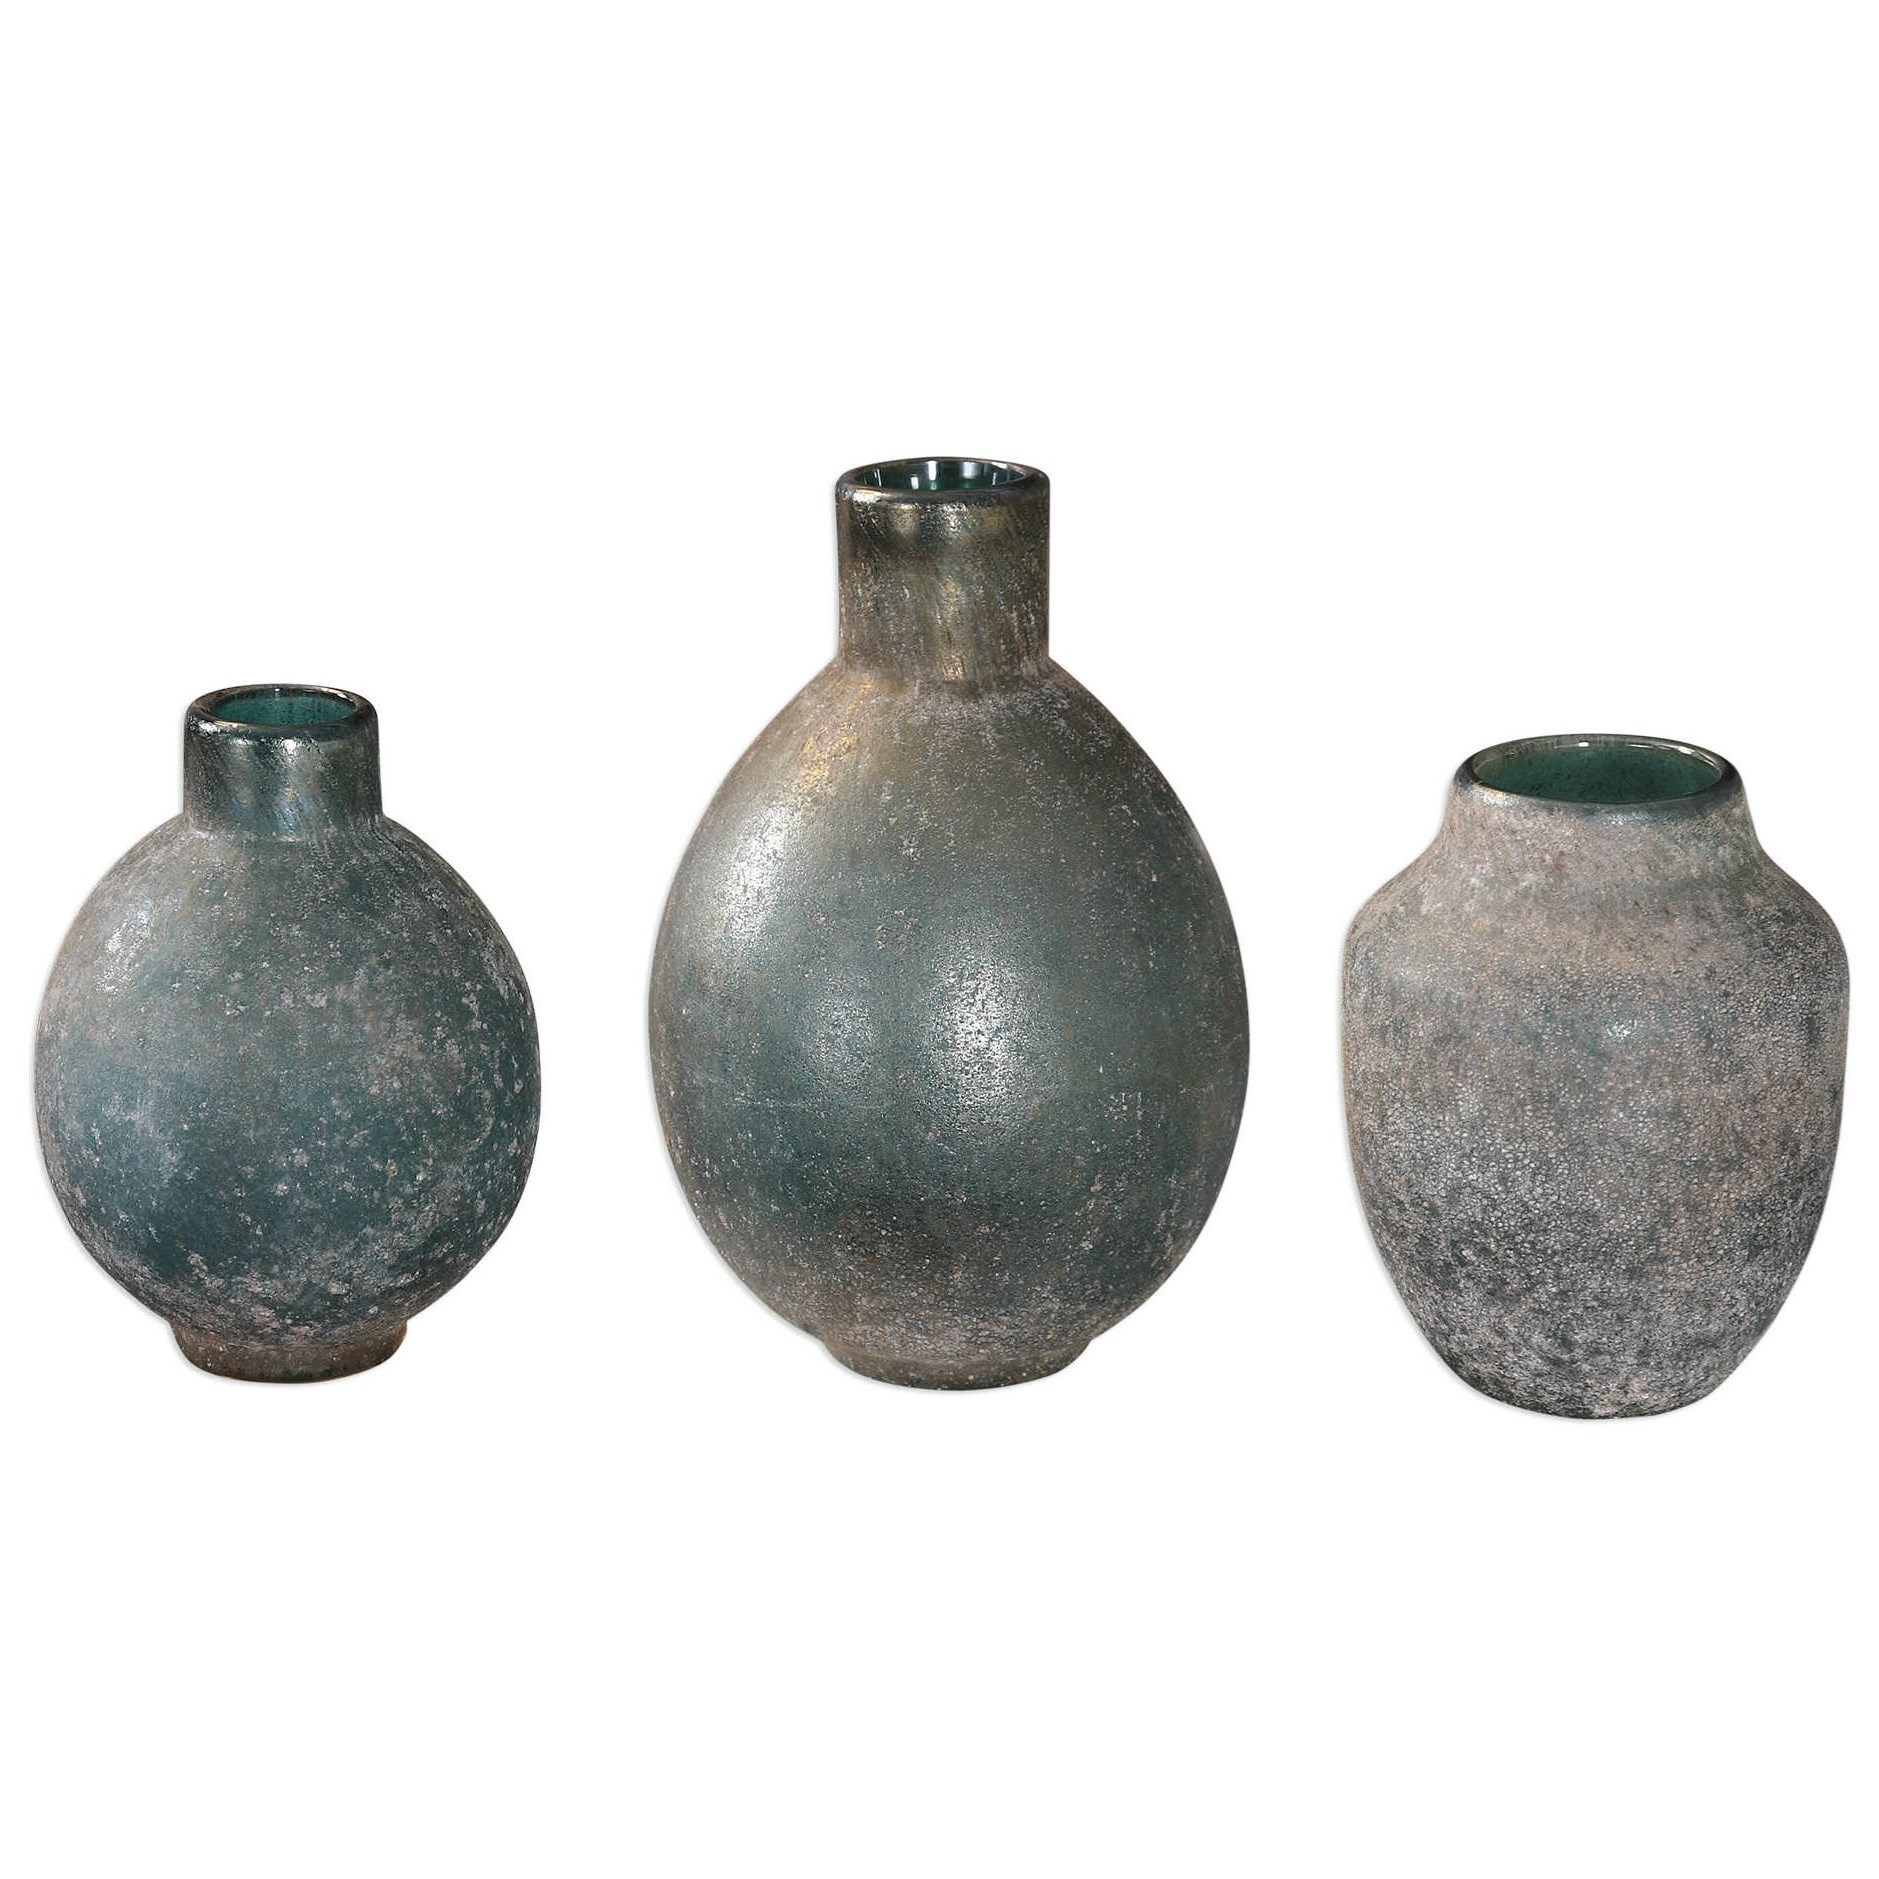 Accessories - Vases and Urns Mercede Weathered Blue-Green Vases Set of 3 at Becker Furniture